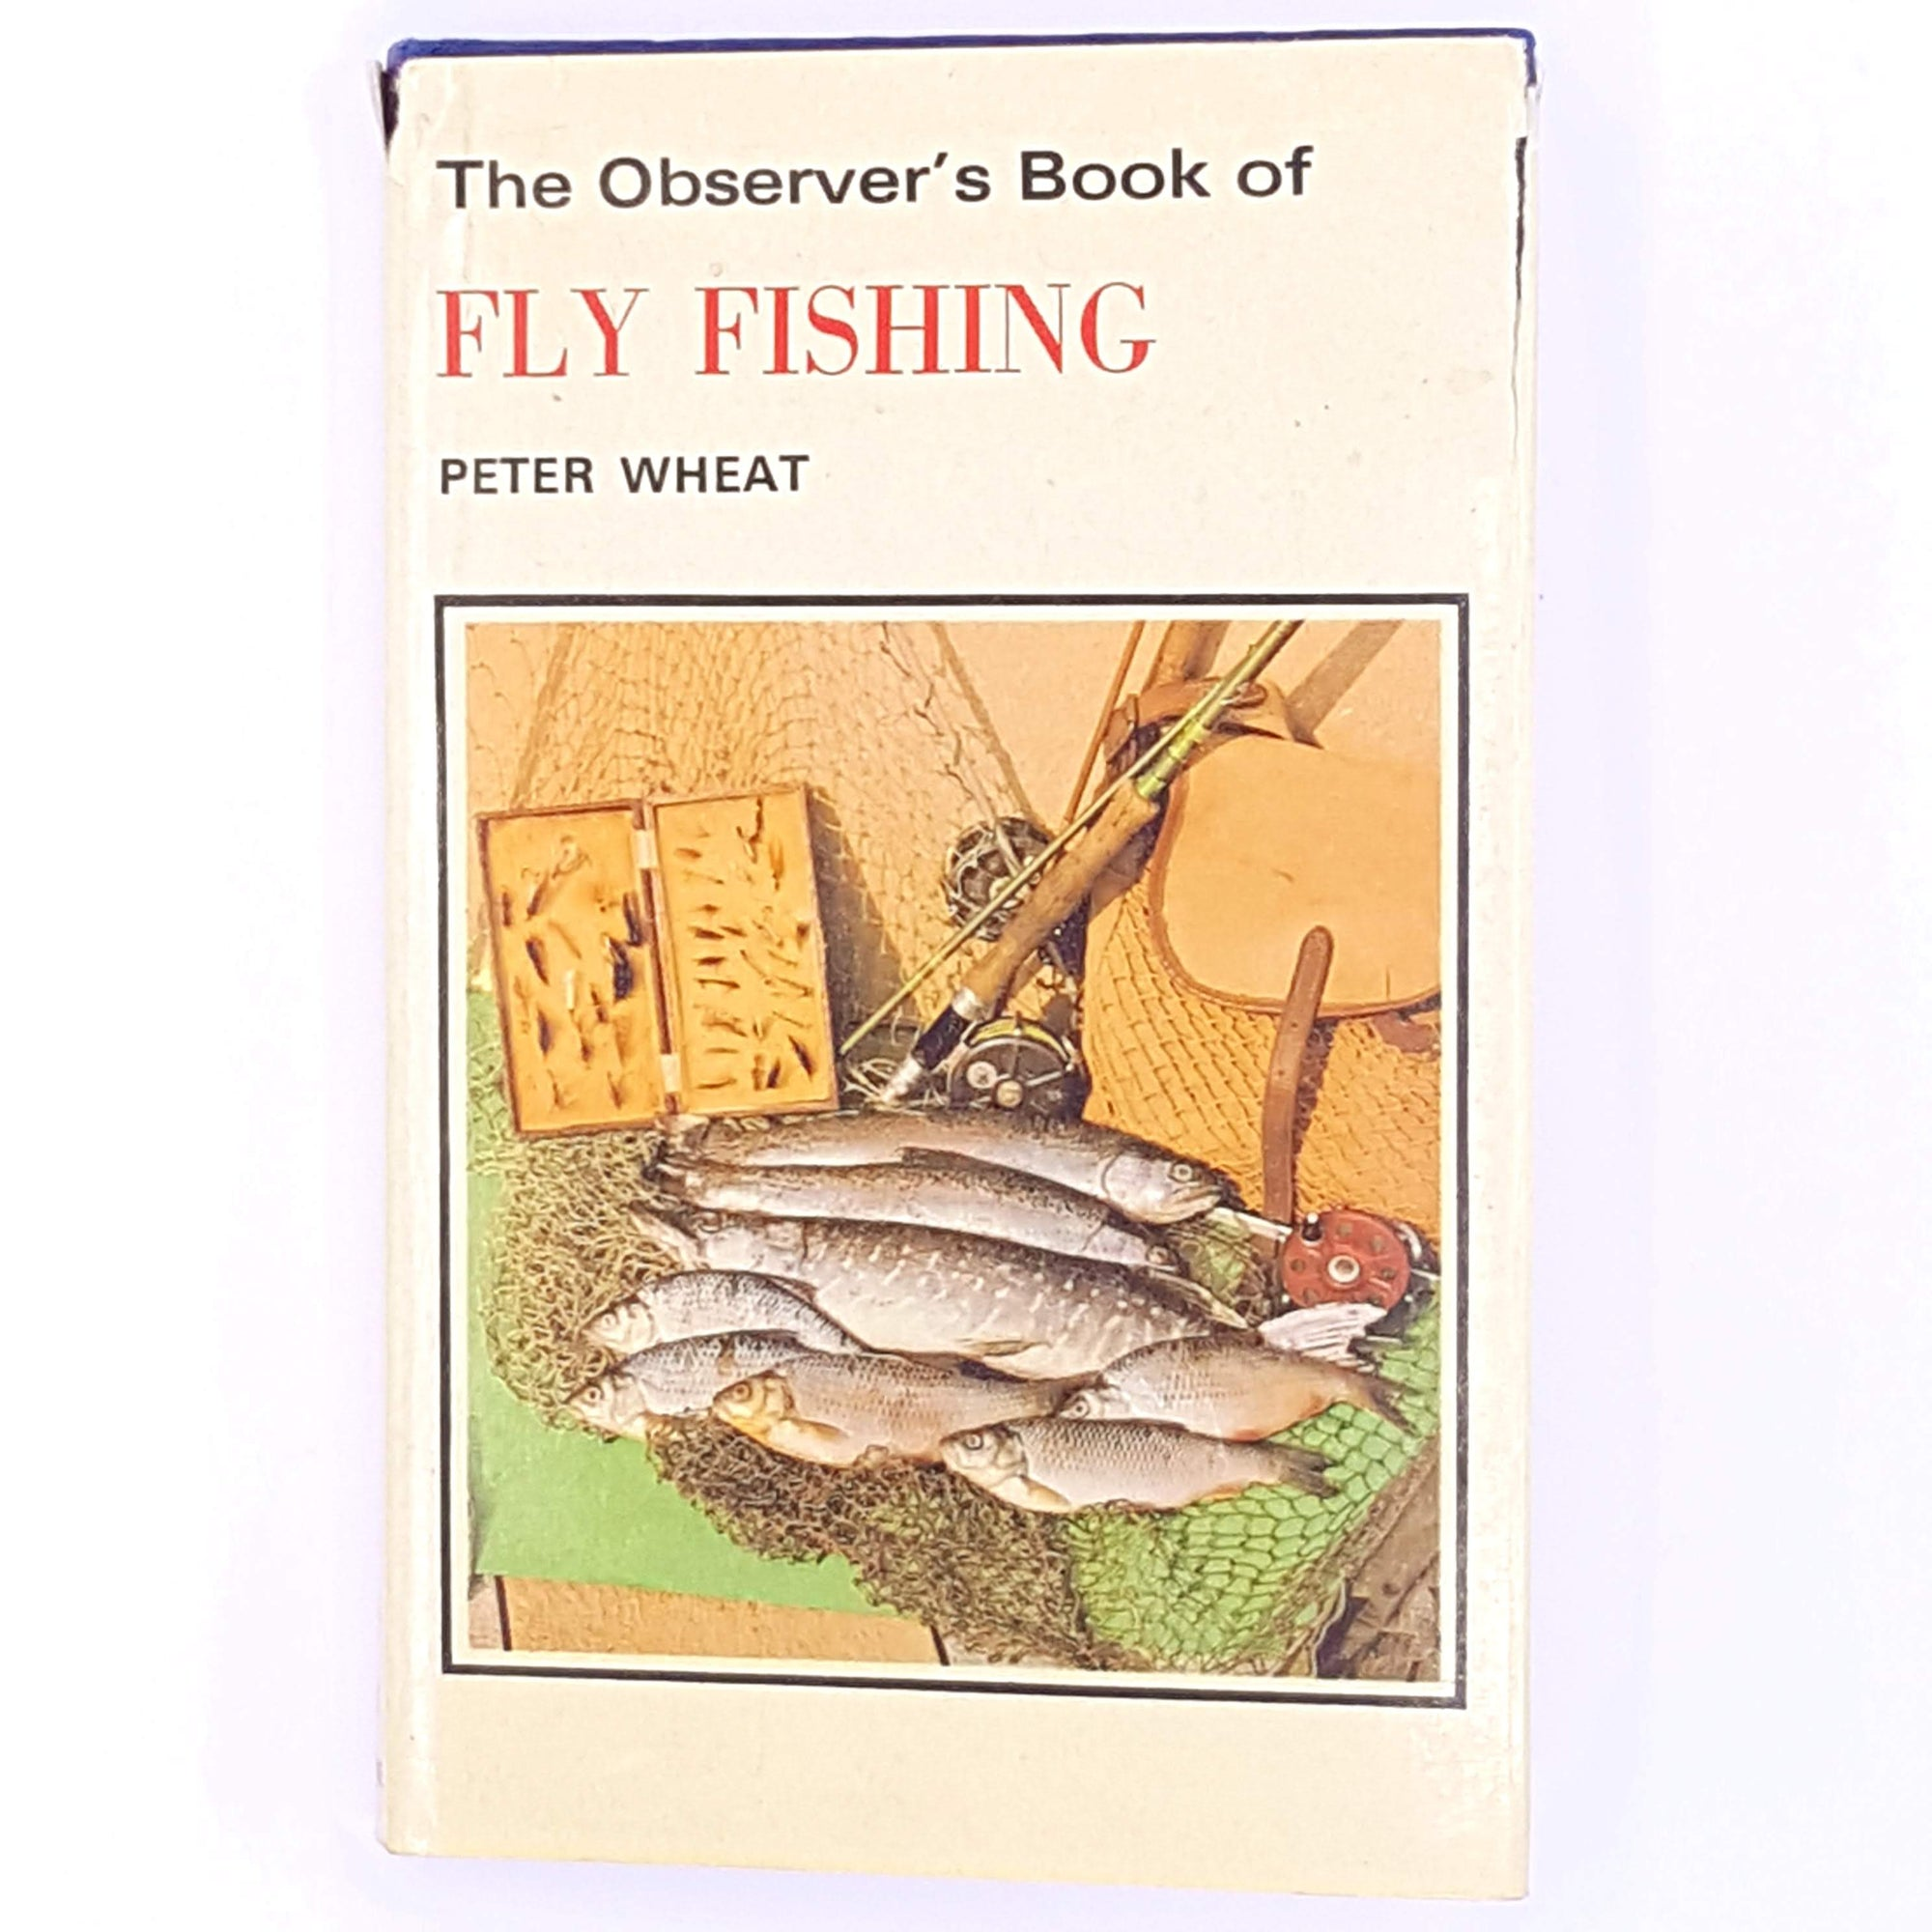 warne-country-house-library-warne-thrift-decorative-sport-river-1977-vintage-baz-east-fly-fishing-diagrams-peter-wheat-patterned-observer-classic-books-antique-old-